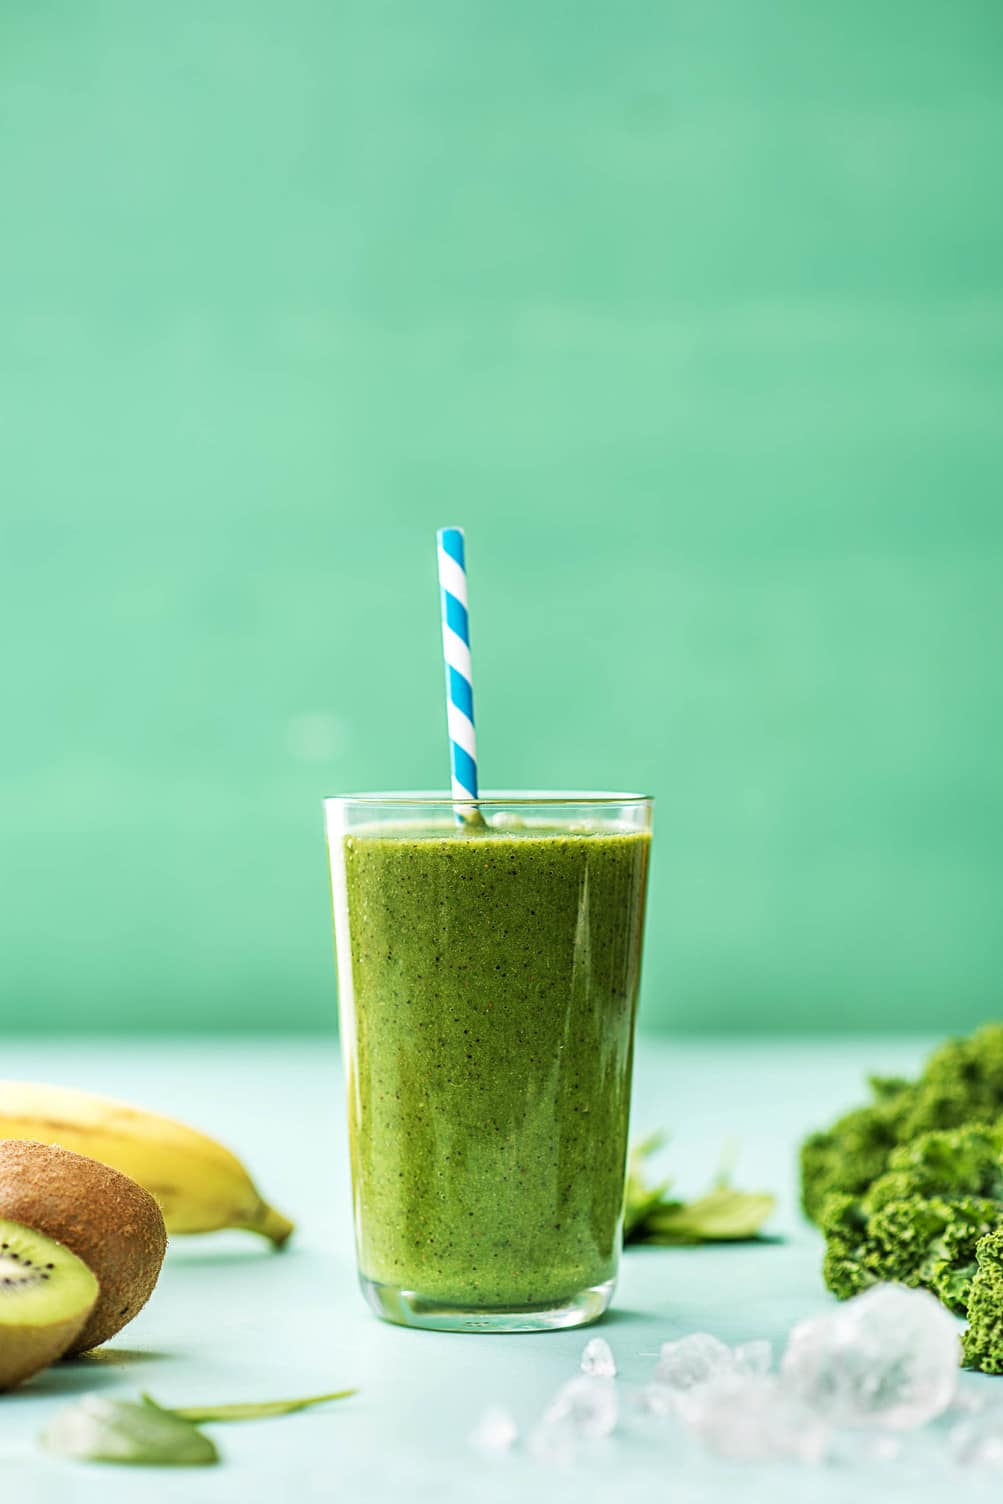 Discussion on this topic: 5 Smoothies That Actually Fill You Up, 5-smoothies-that-actually-fill-you-up/